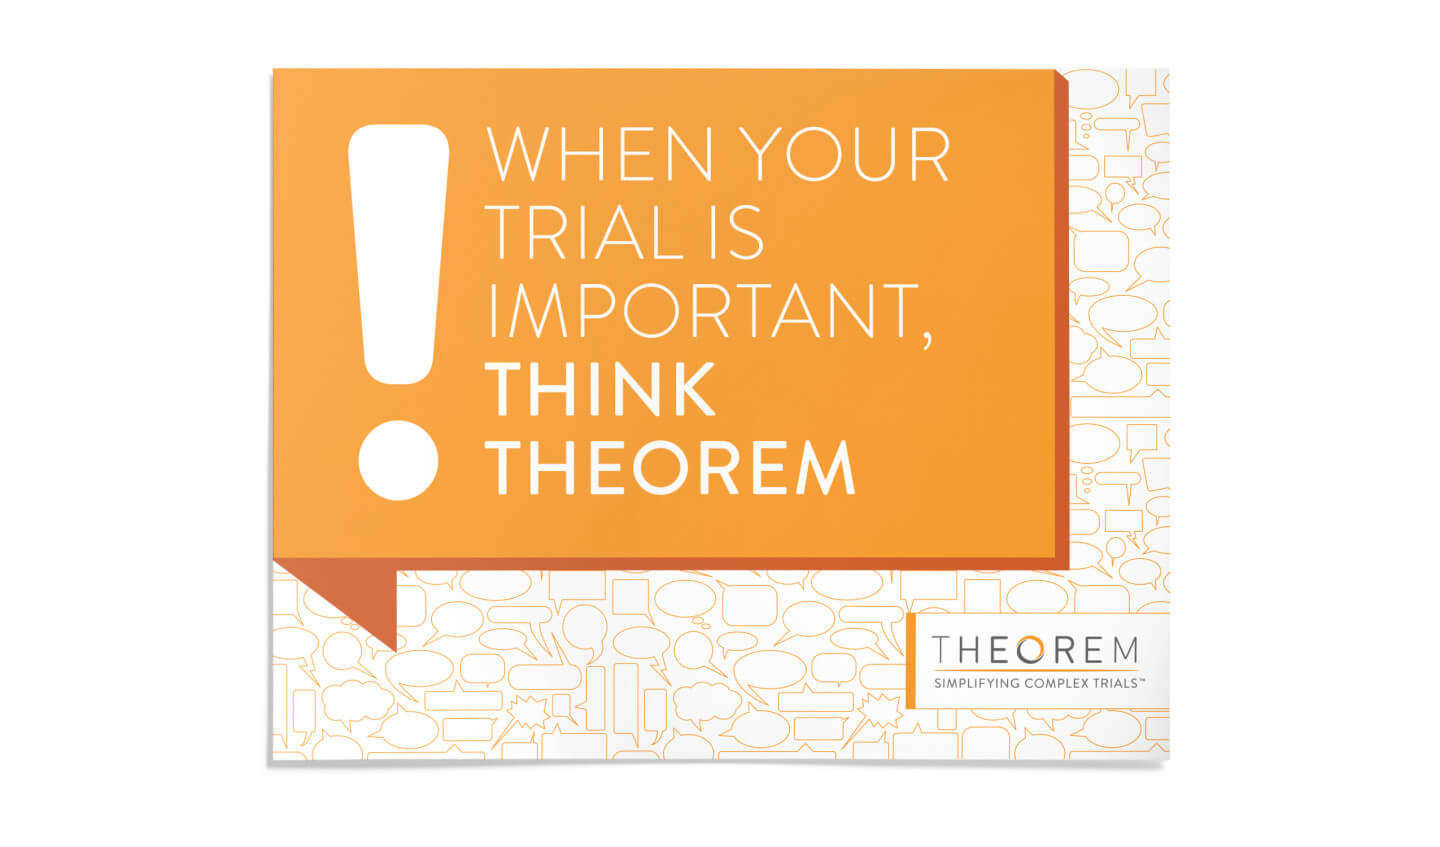 Theorem Big idea